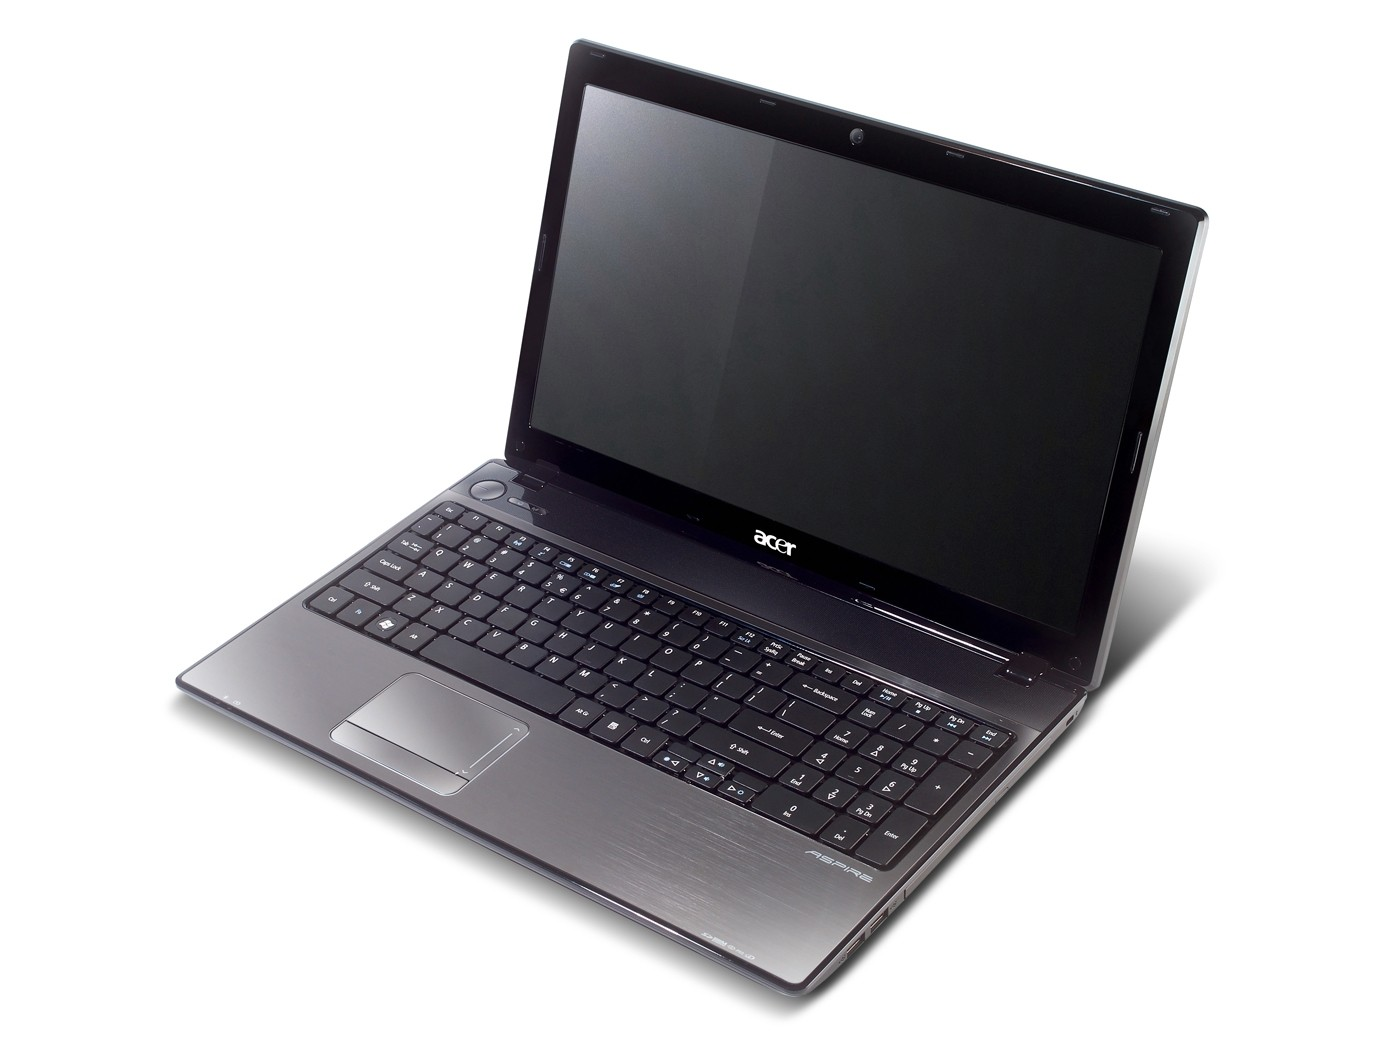 Refurbished laptops & desktops - Refurbished Acer Aspire 5741 (Core I3 1ST GEN/3GB/250GB/Webcam/15.6''/DOS)